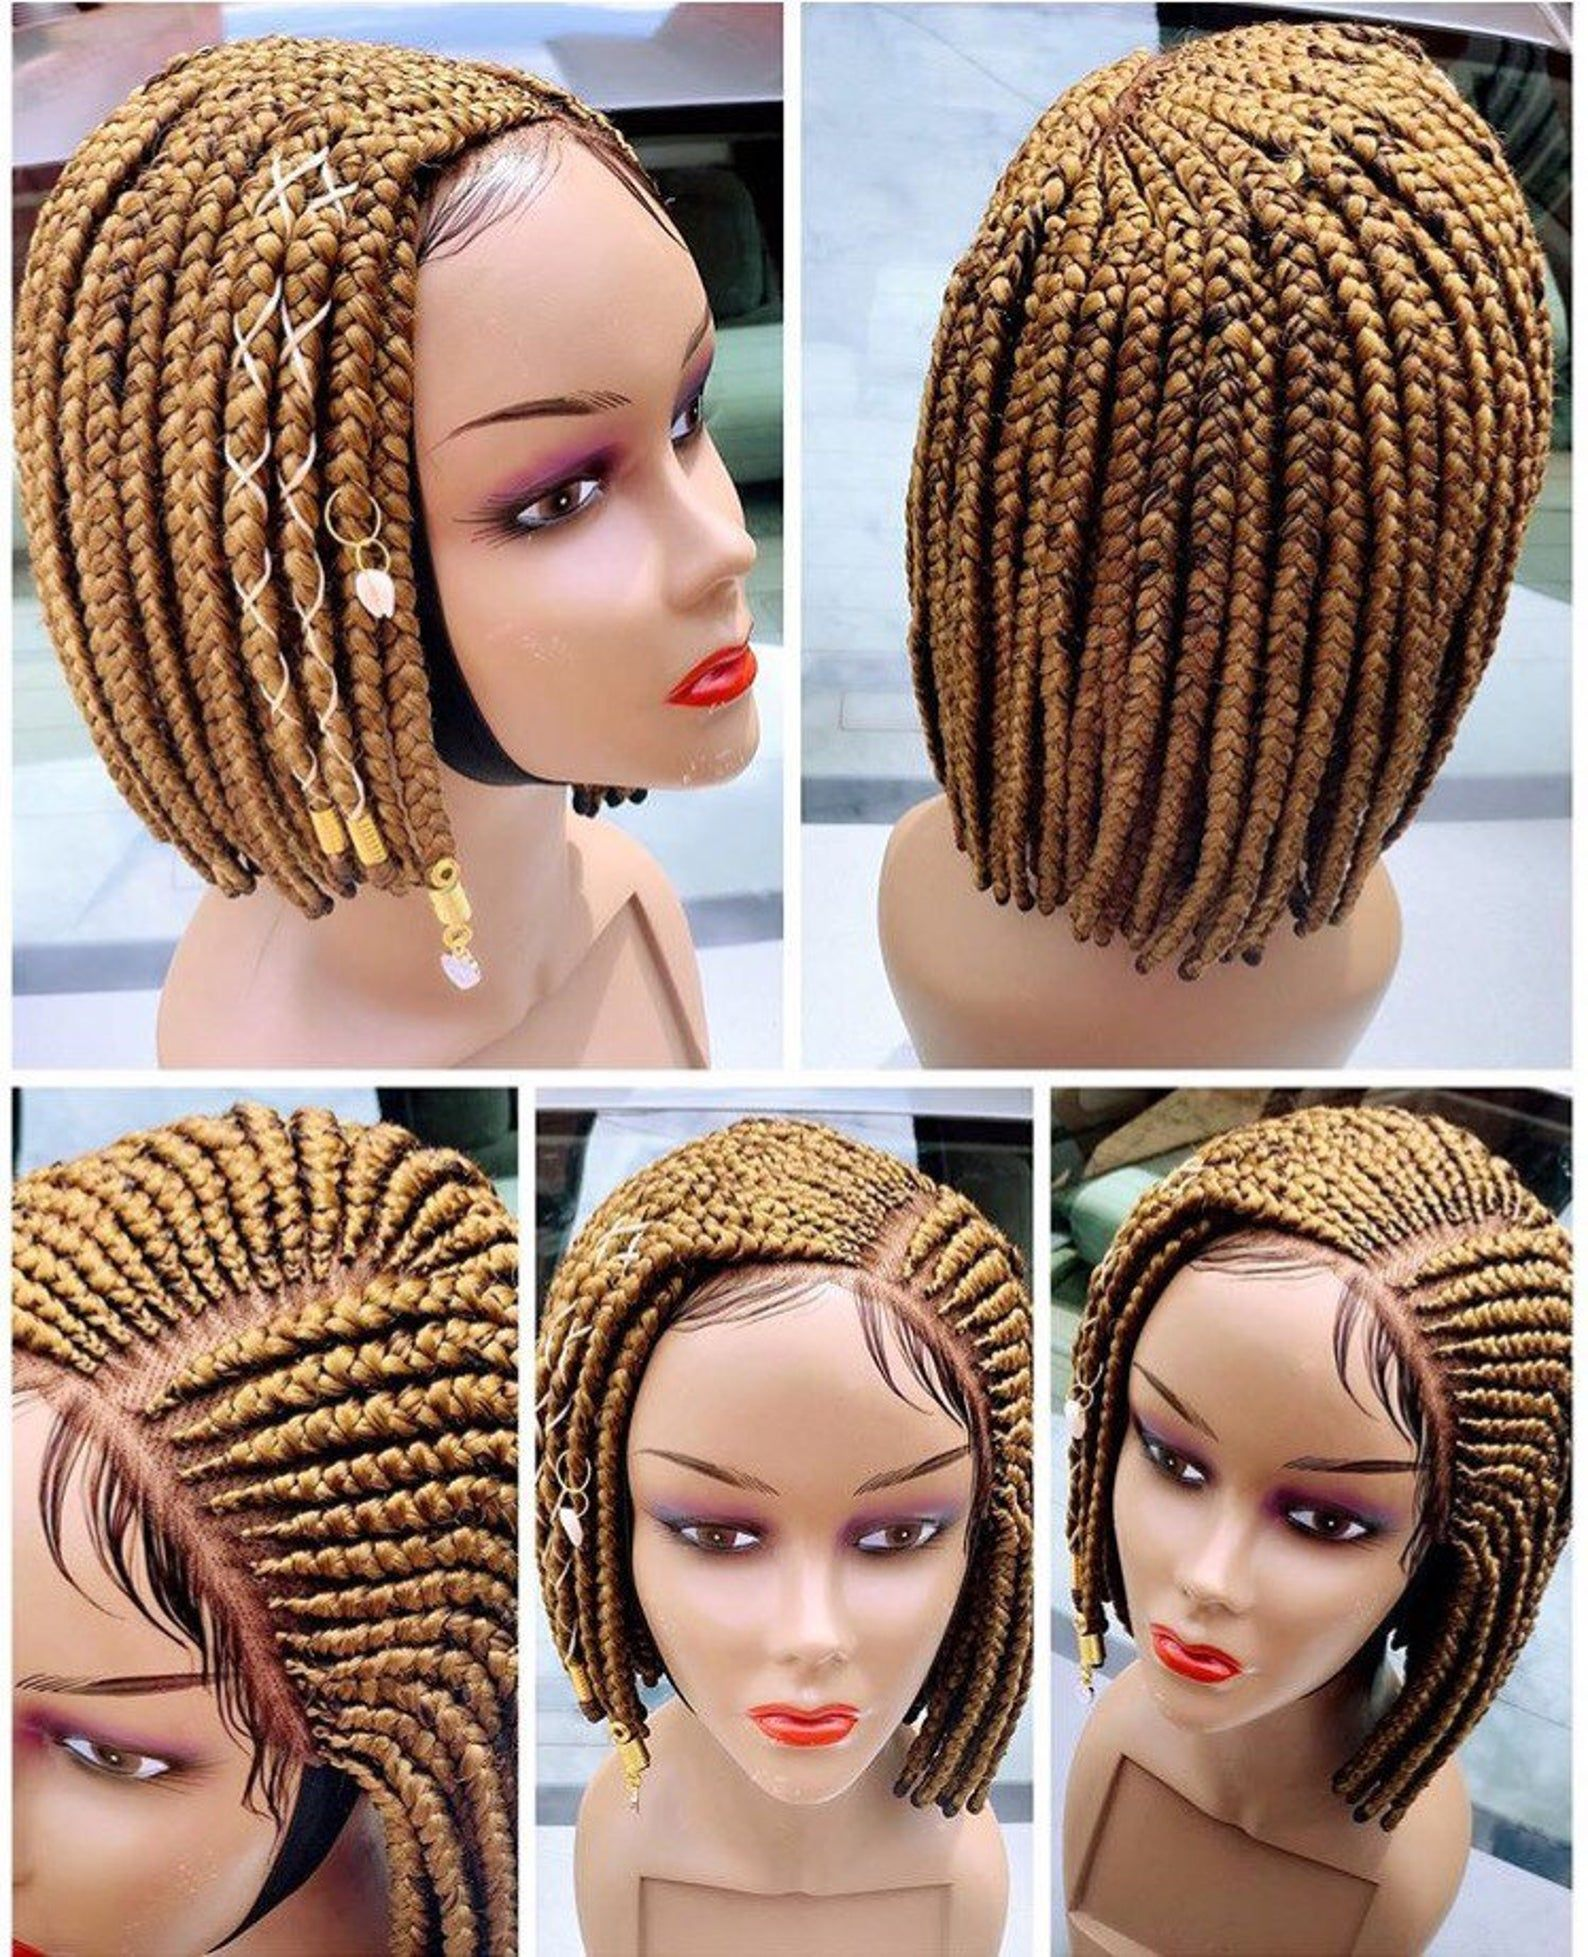 Bob side conrow wig etsy in 2020 braided hairstyles